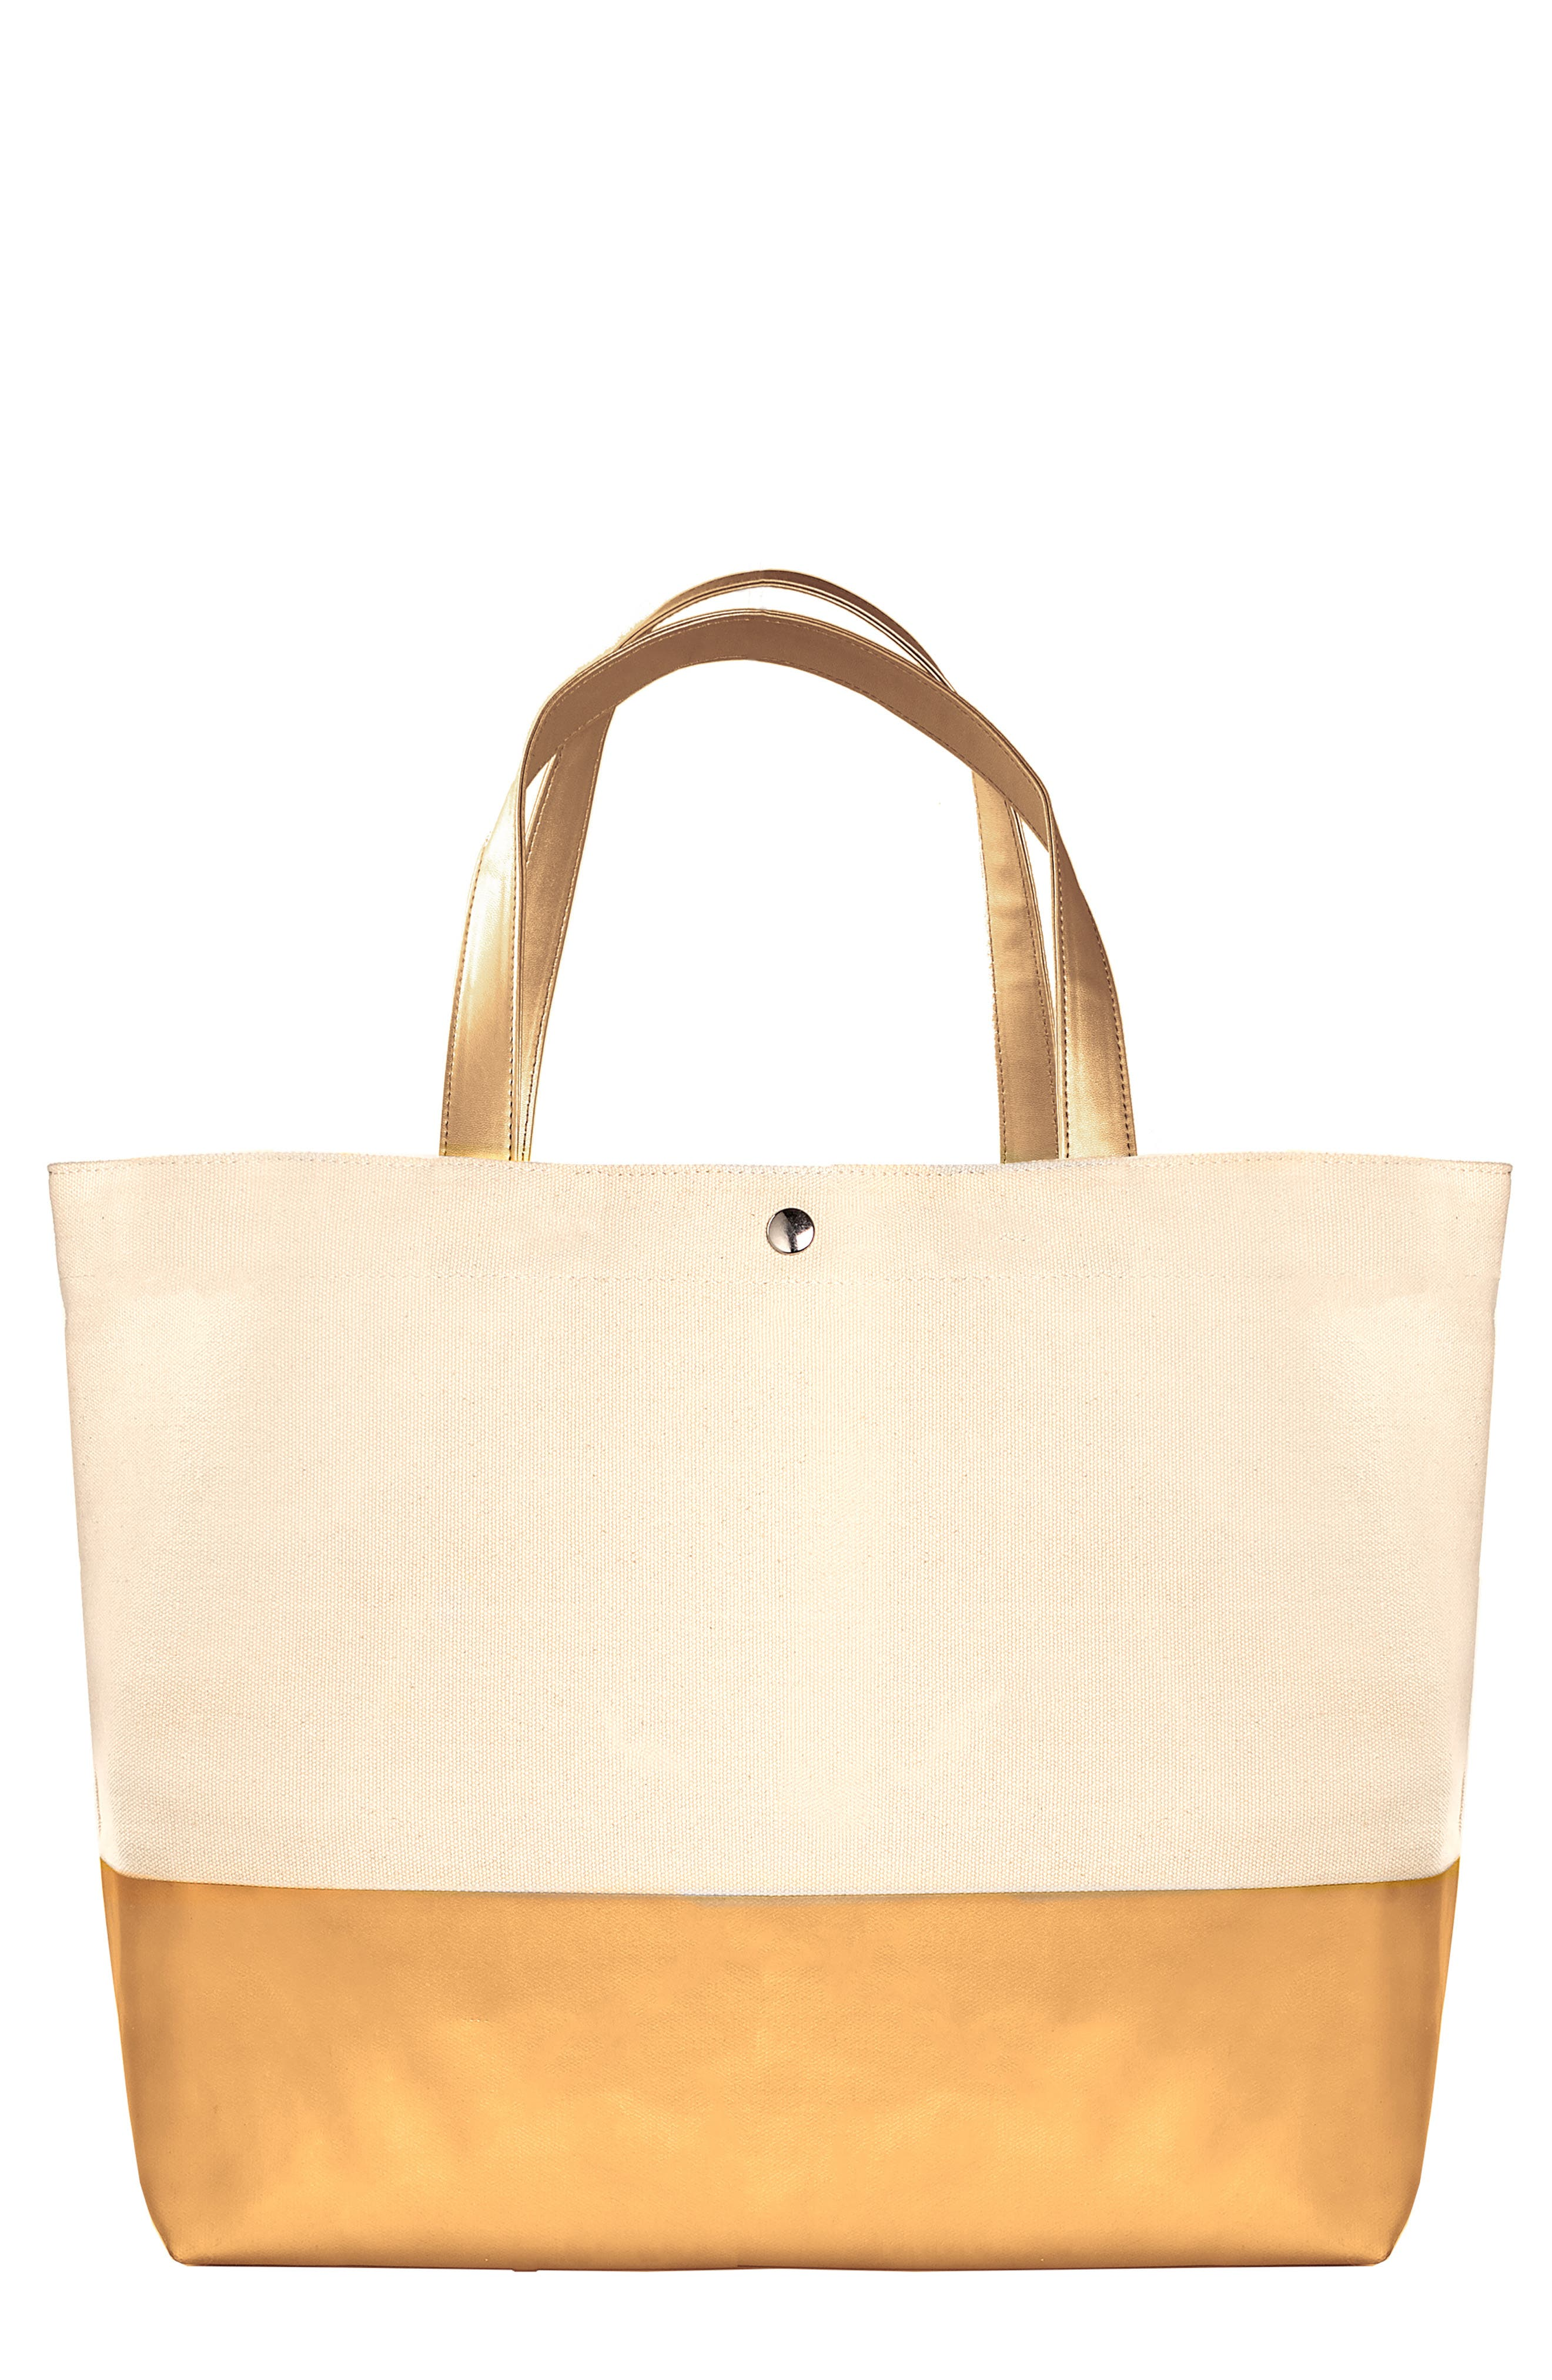 CATHY'S CONCEPTS Monogram Canvas Tote, Main, color, GOLD